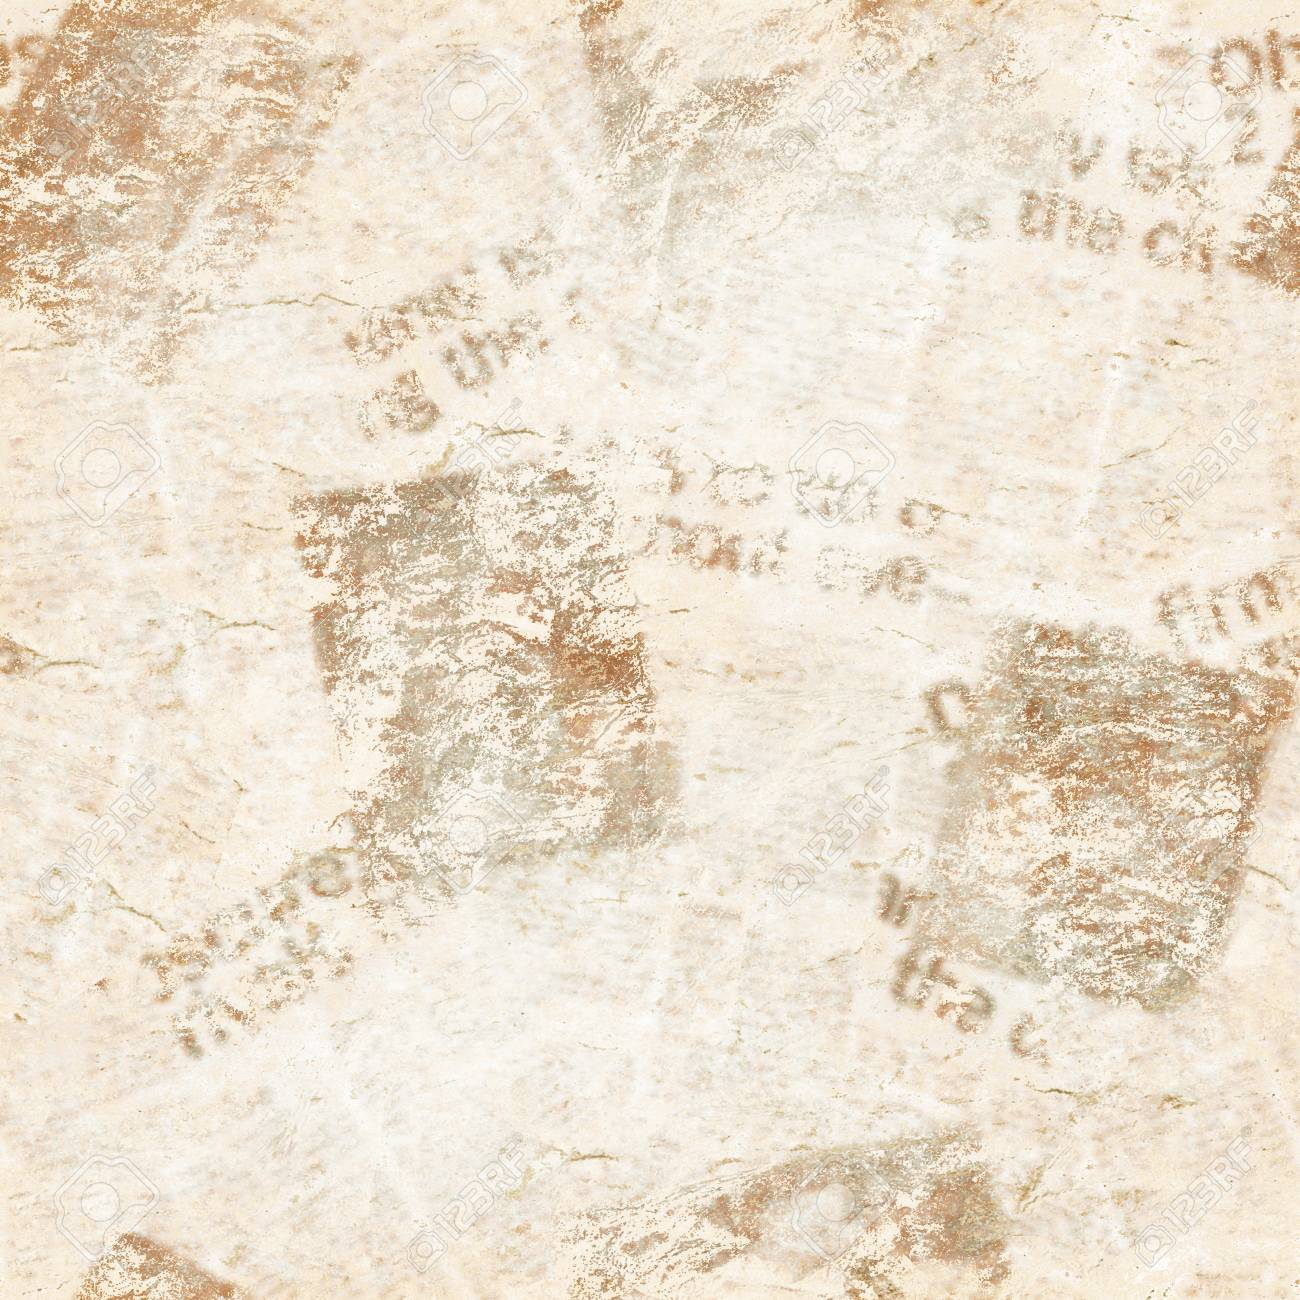 old grunge newspaper collage paper texture seamless pattern